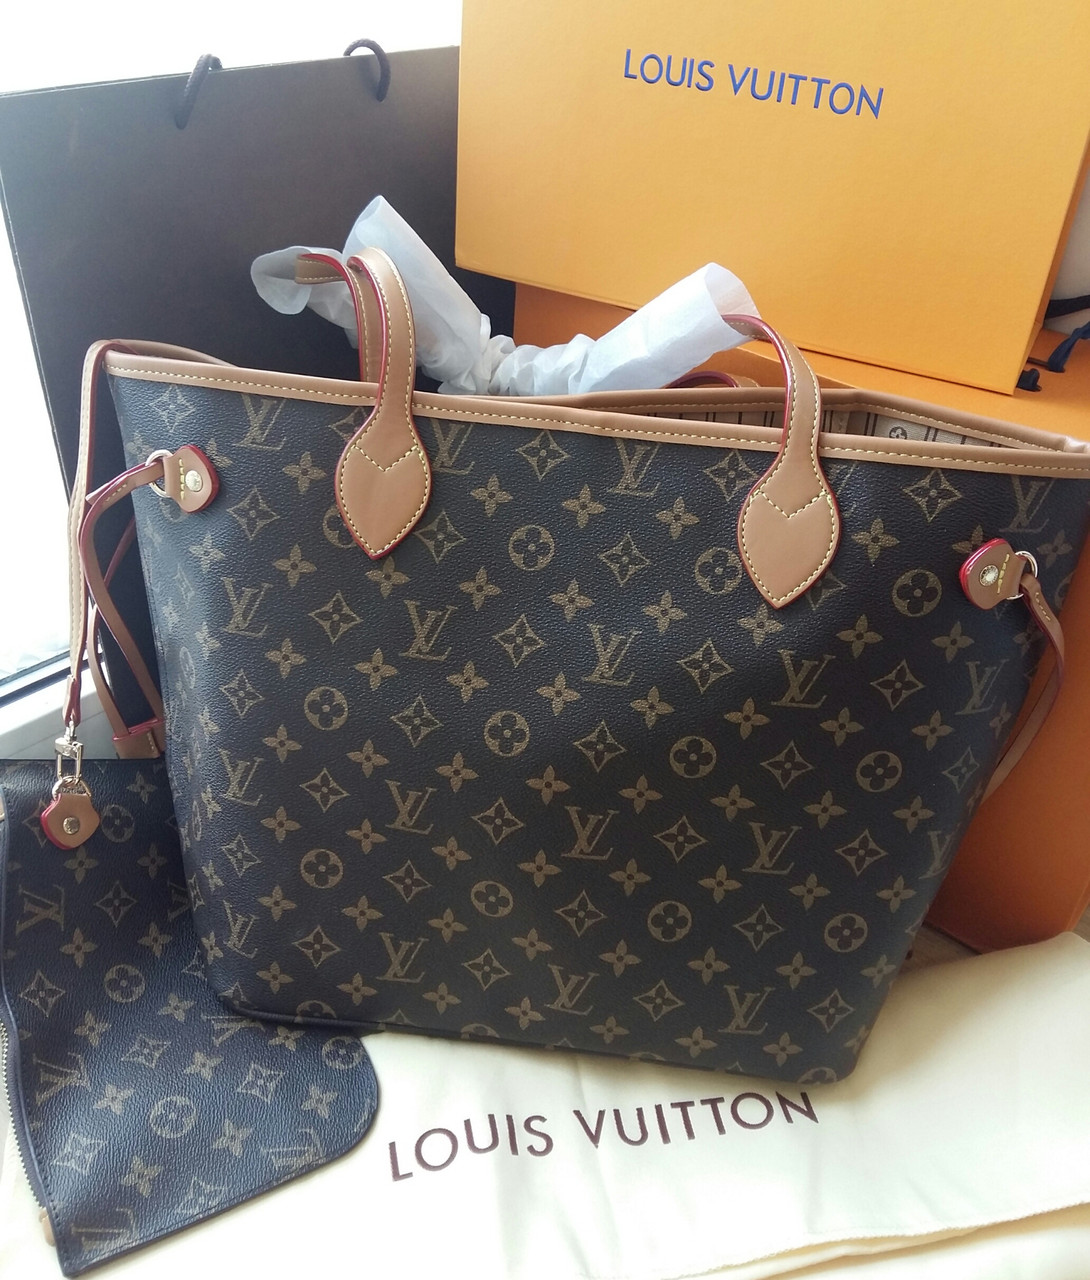 Сумка Louis Vuitton Neverfull Меdium монограмм классика